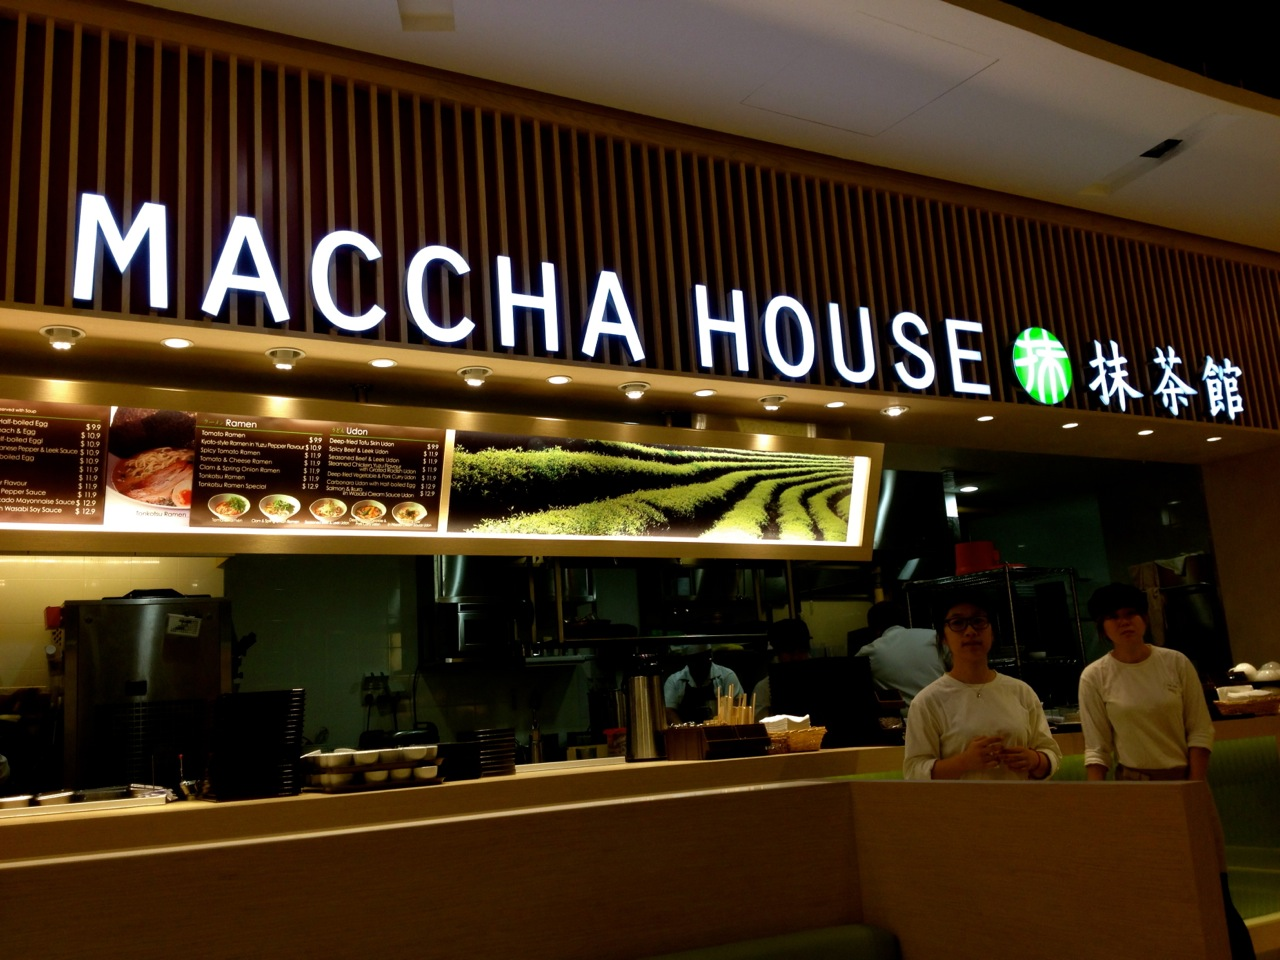 the matcha house